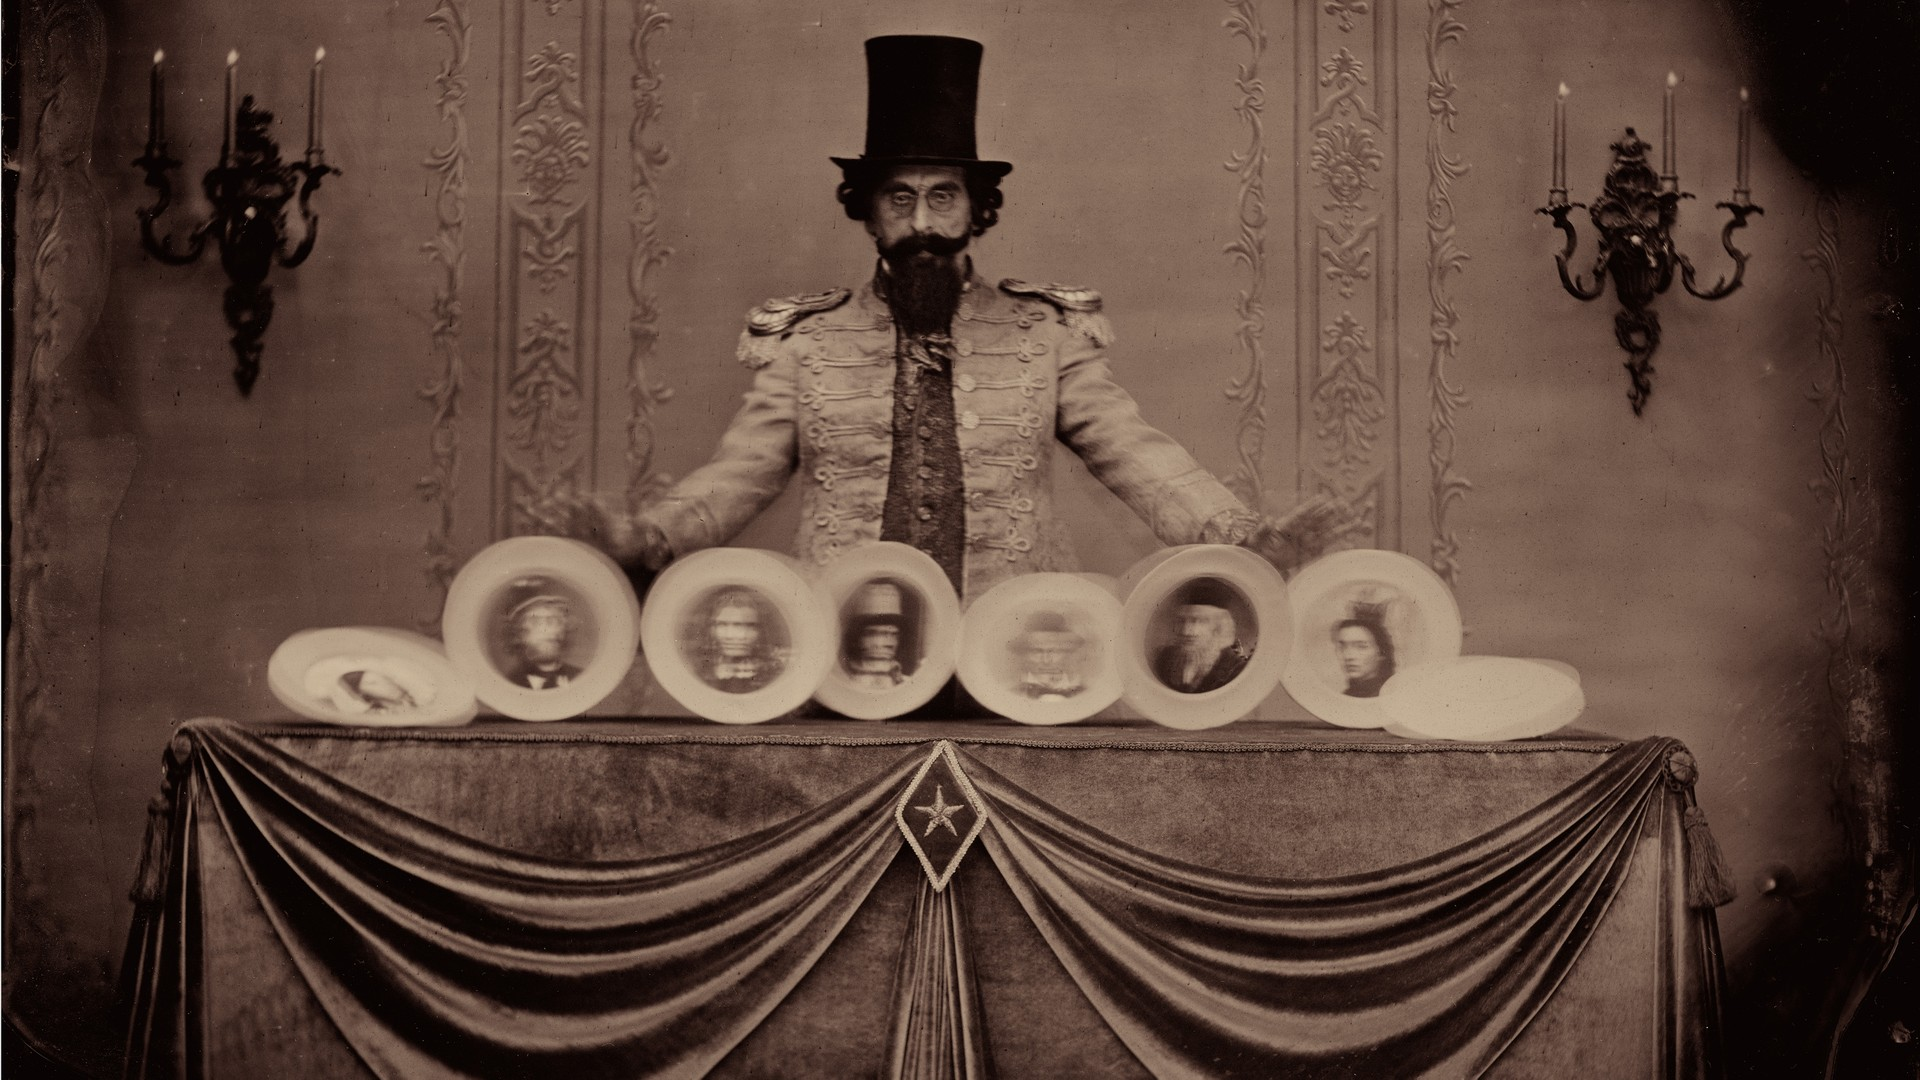 A man wearing a top hat is spinning plates